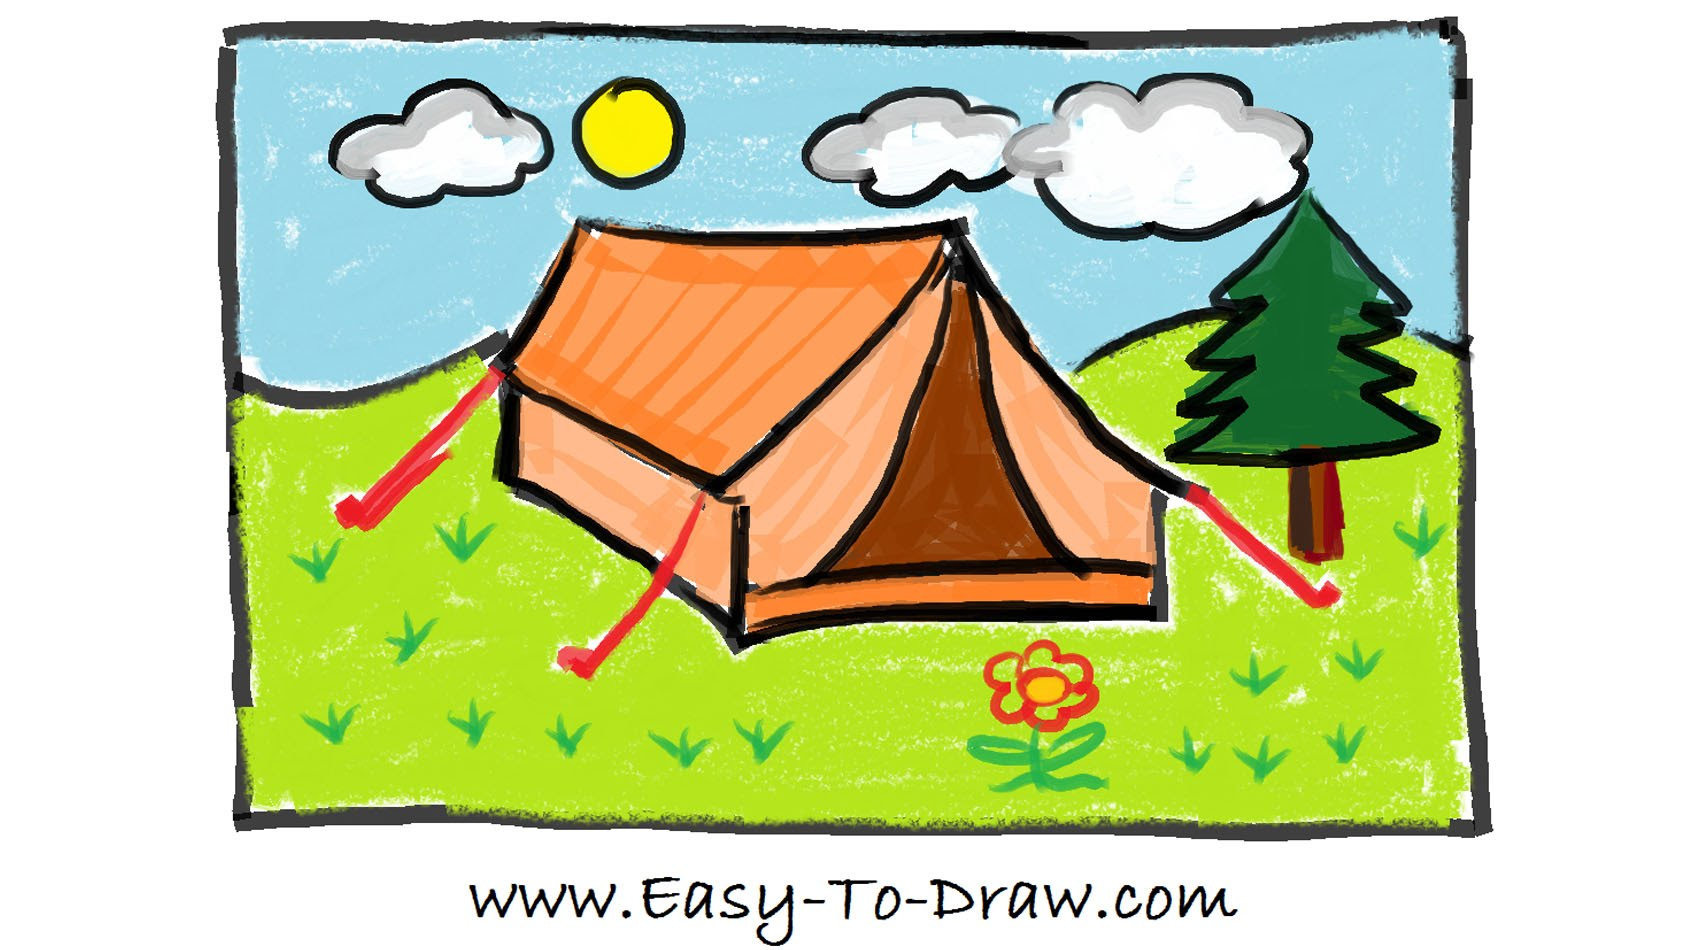 1687x950 How To Draw A Cartoon Tent In Campground (Camping Place)